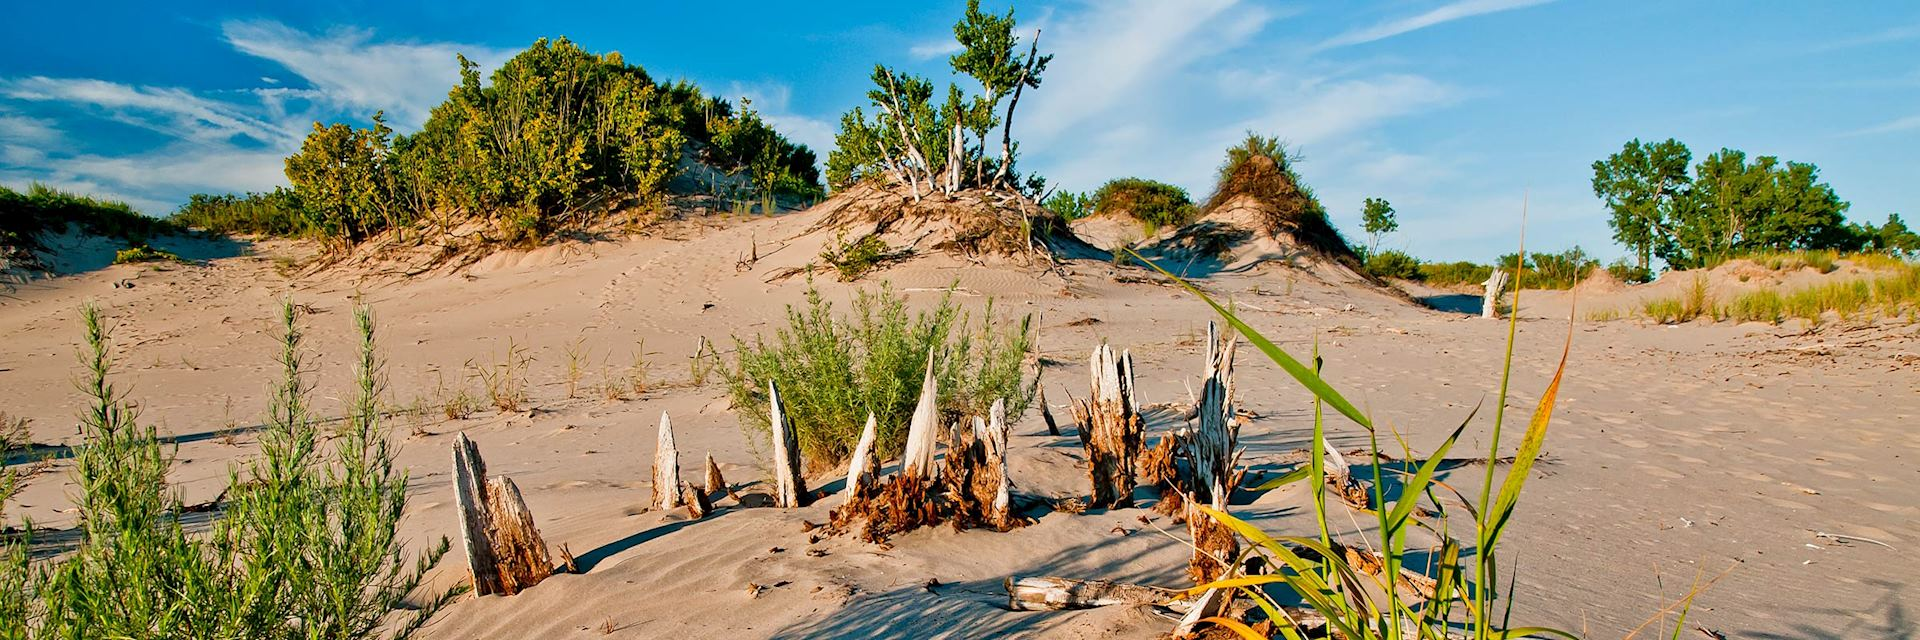 Sand dunes in Prince Edward County